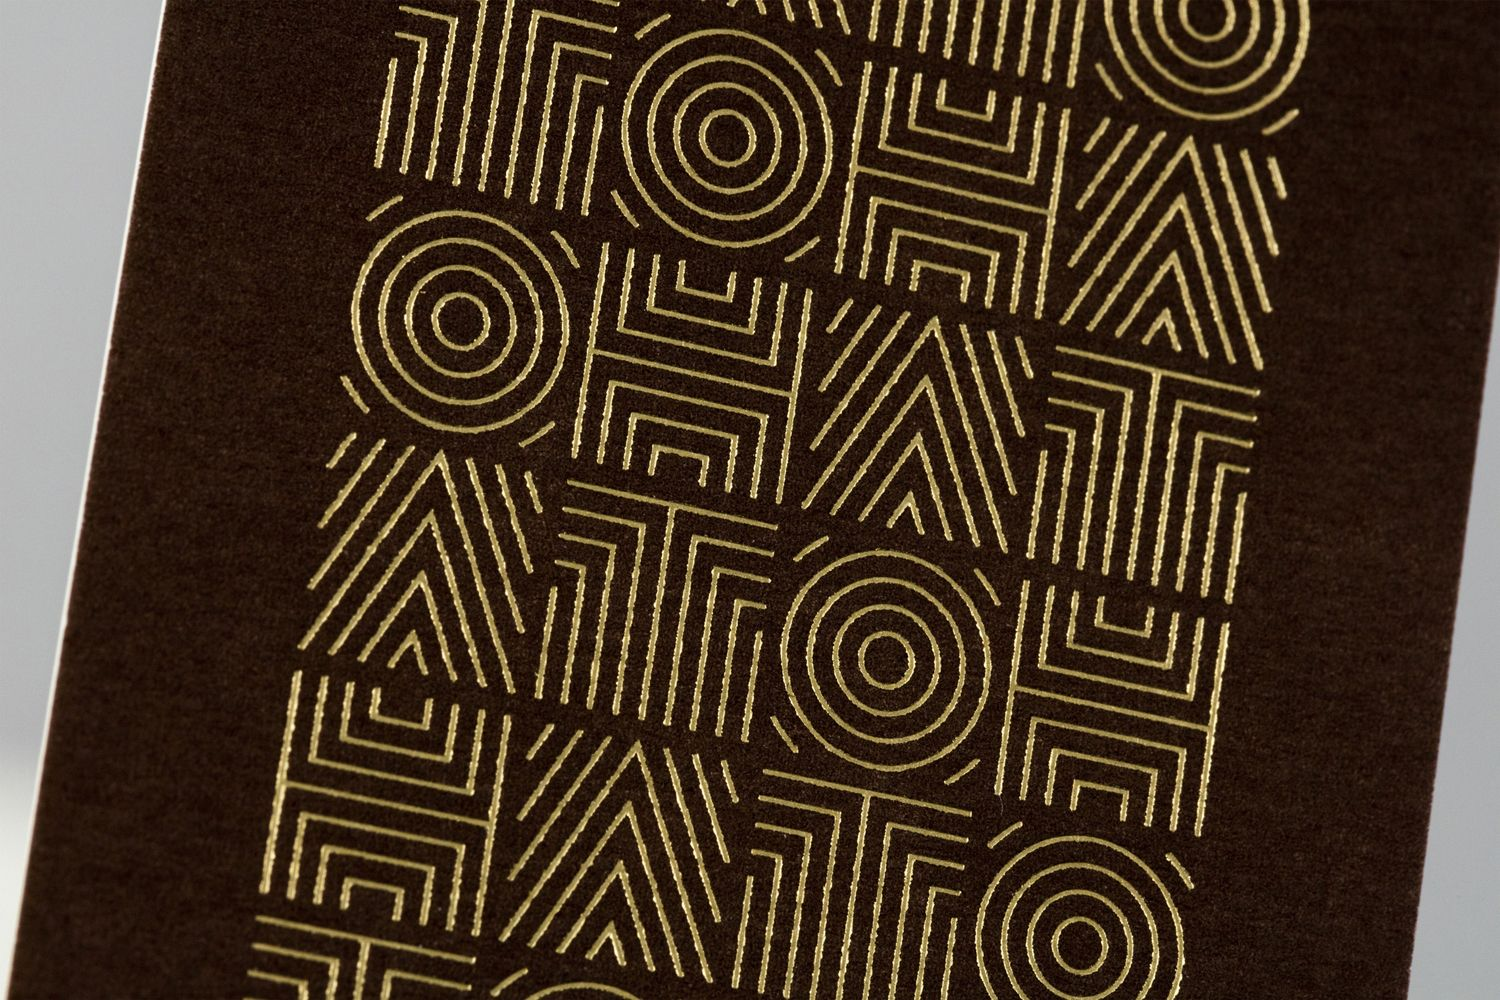 New brand identity for hato by allink bpo asian restaurants brand identity and business cards for fine dining asian restaurant hato designed by allink switzerland colourmoves Image collections